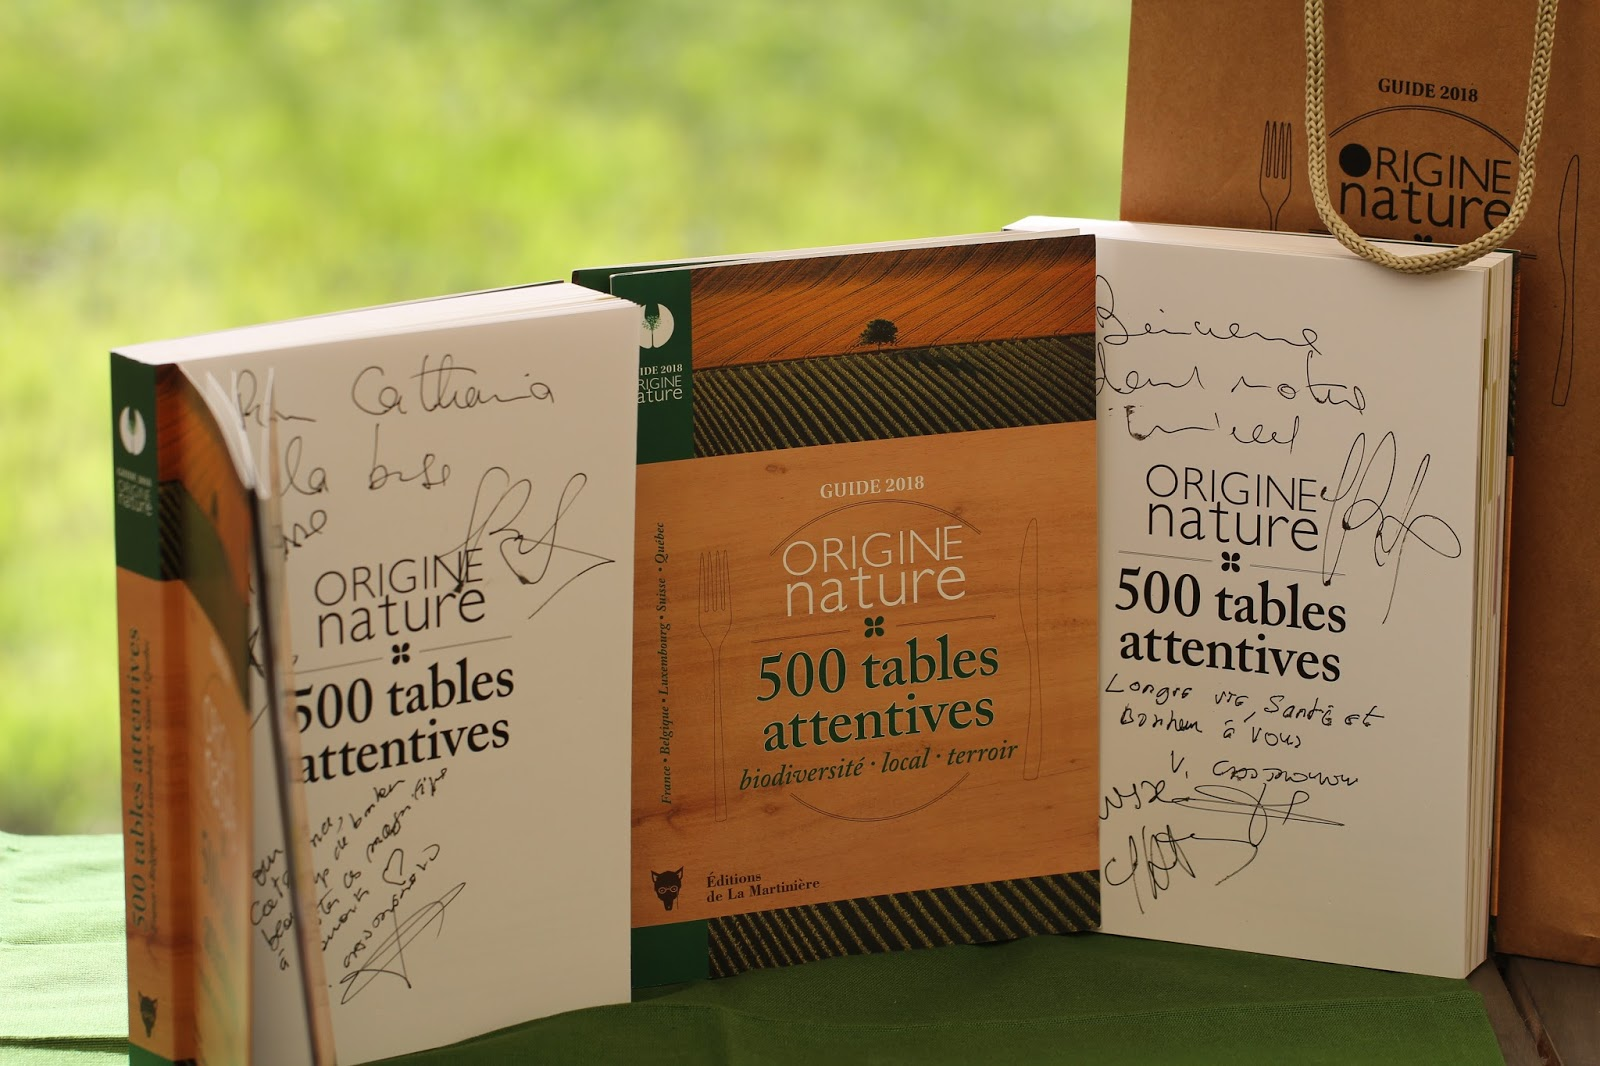 Guide 2018 Origine Nature 500 tables attentives biodiversité, local, terroir